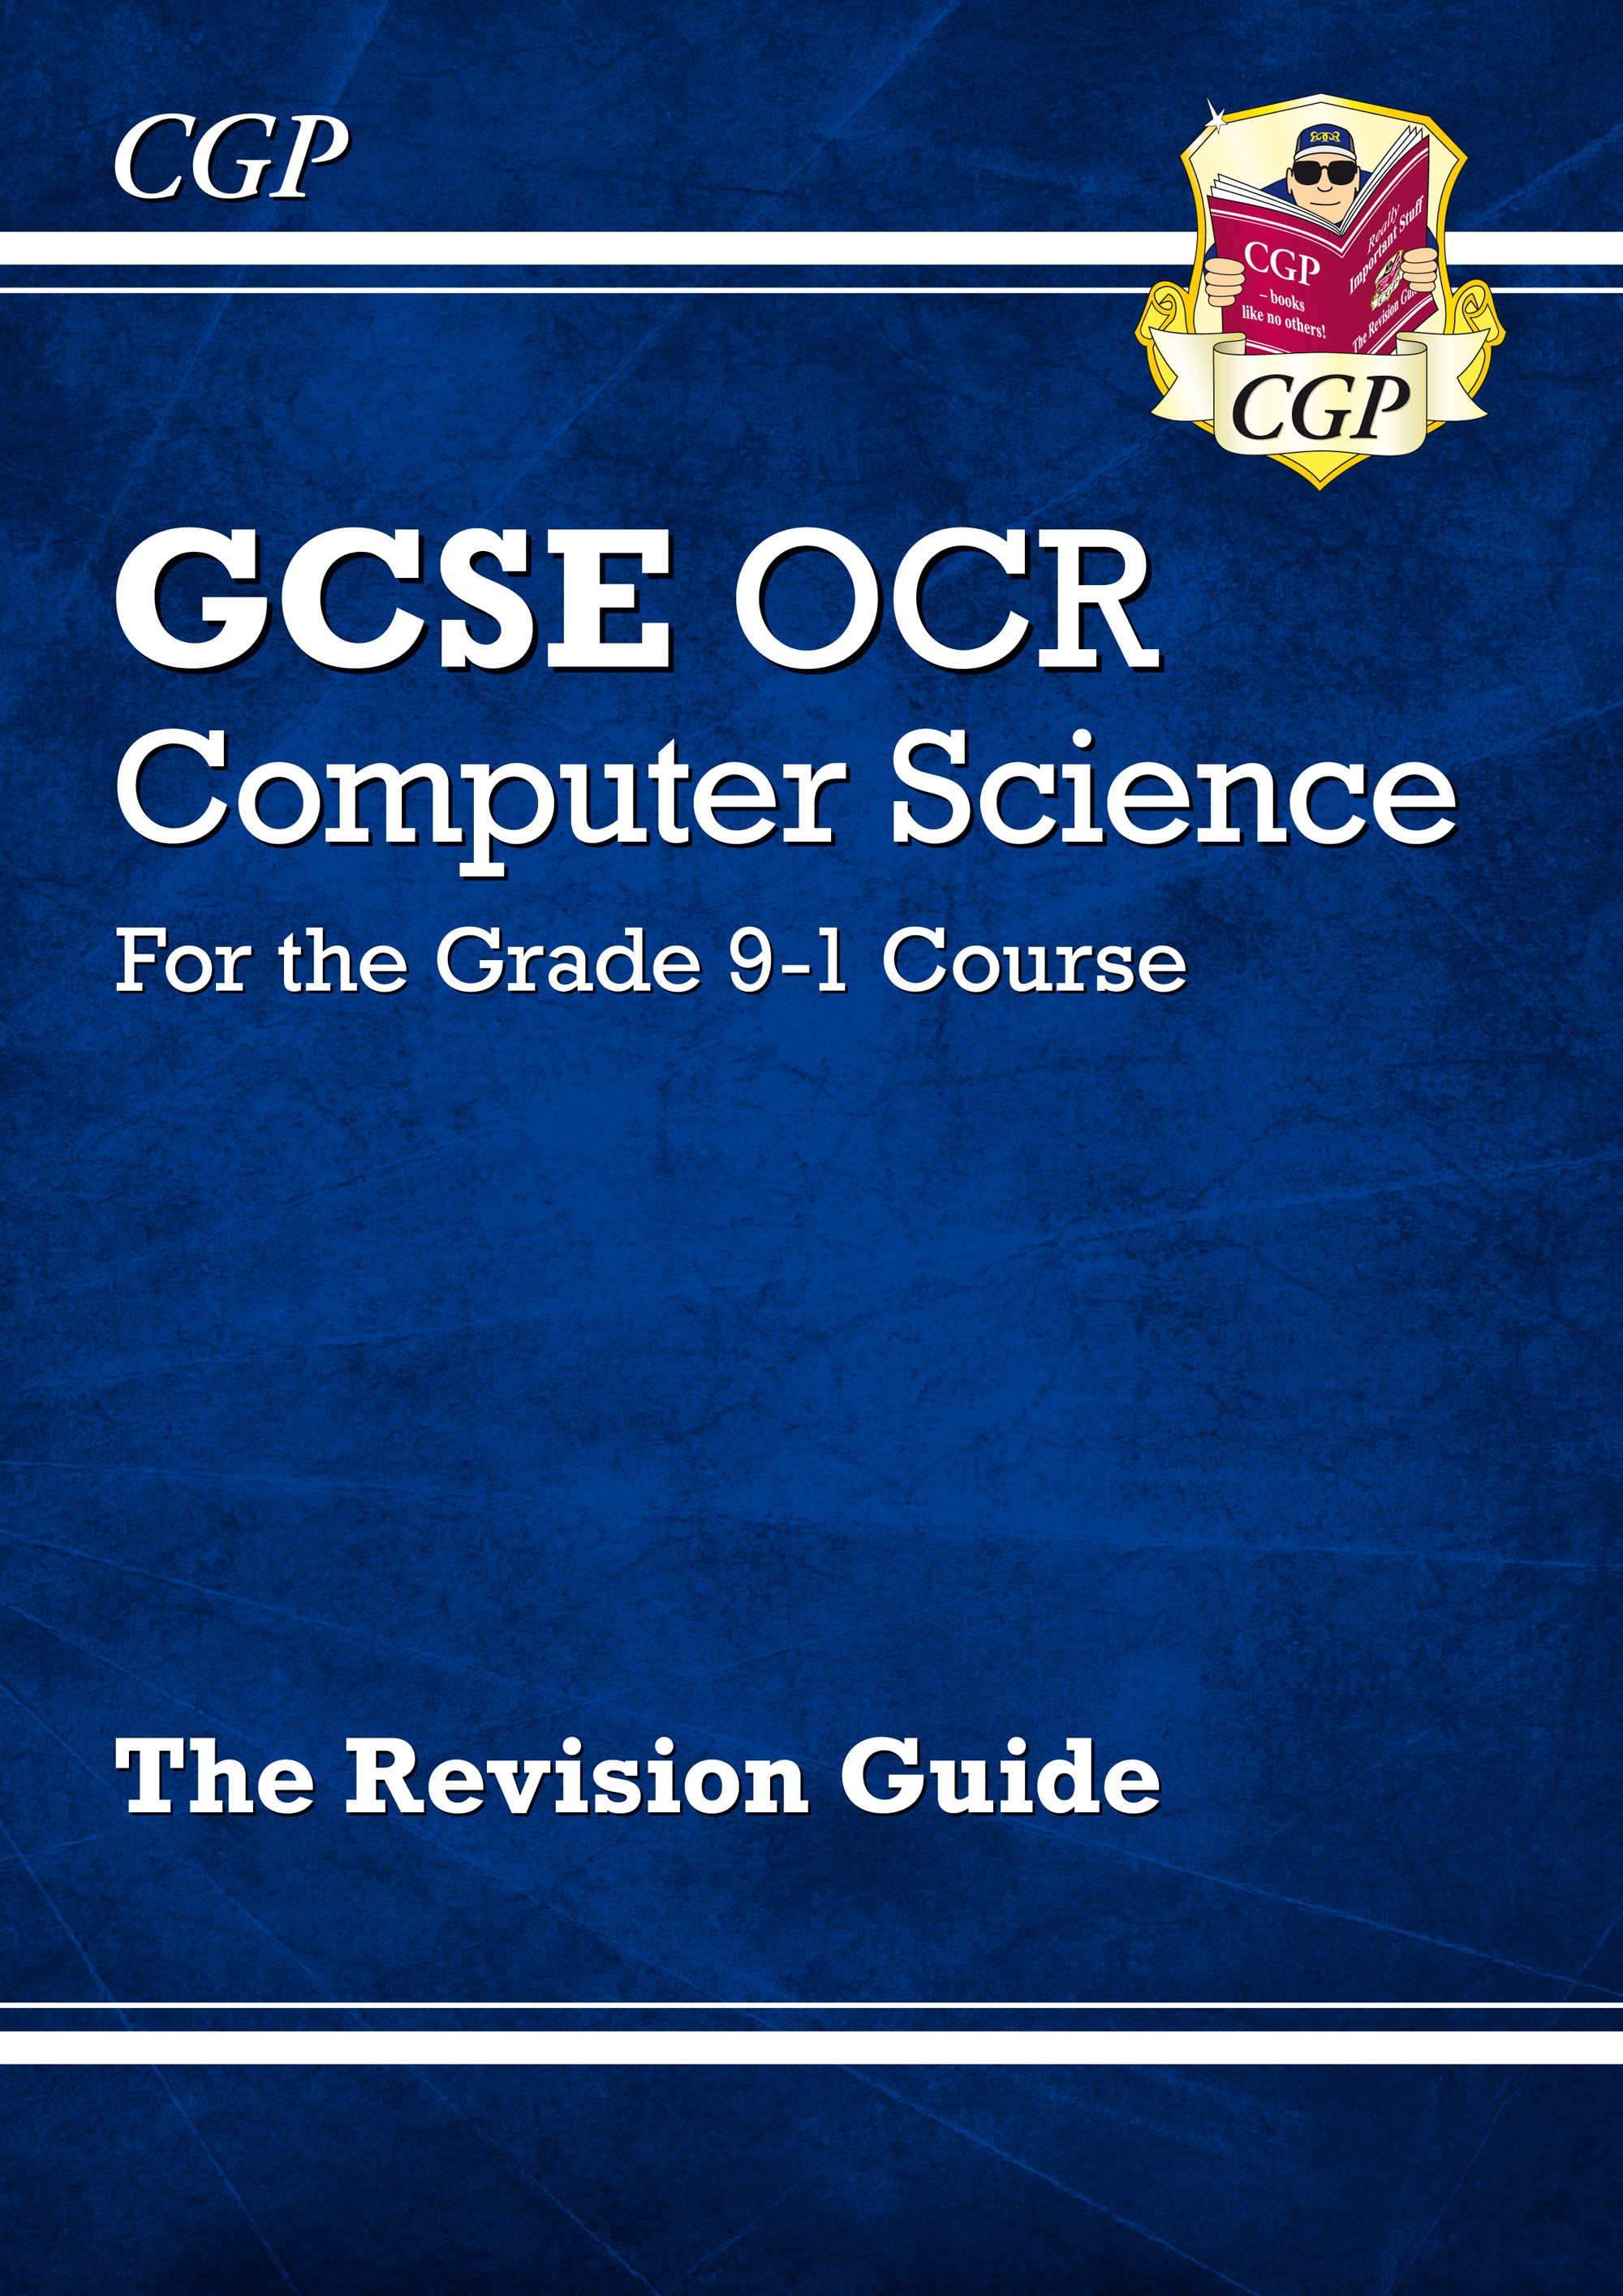 COR41 - GCSE Computer Science OCR Revision Guide - for the Grade 9-1 Course